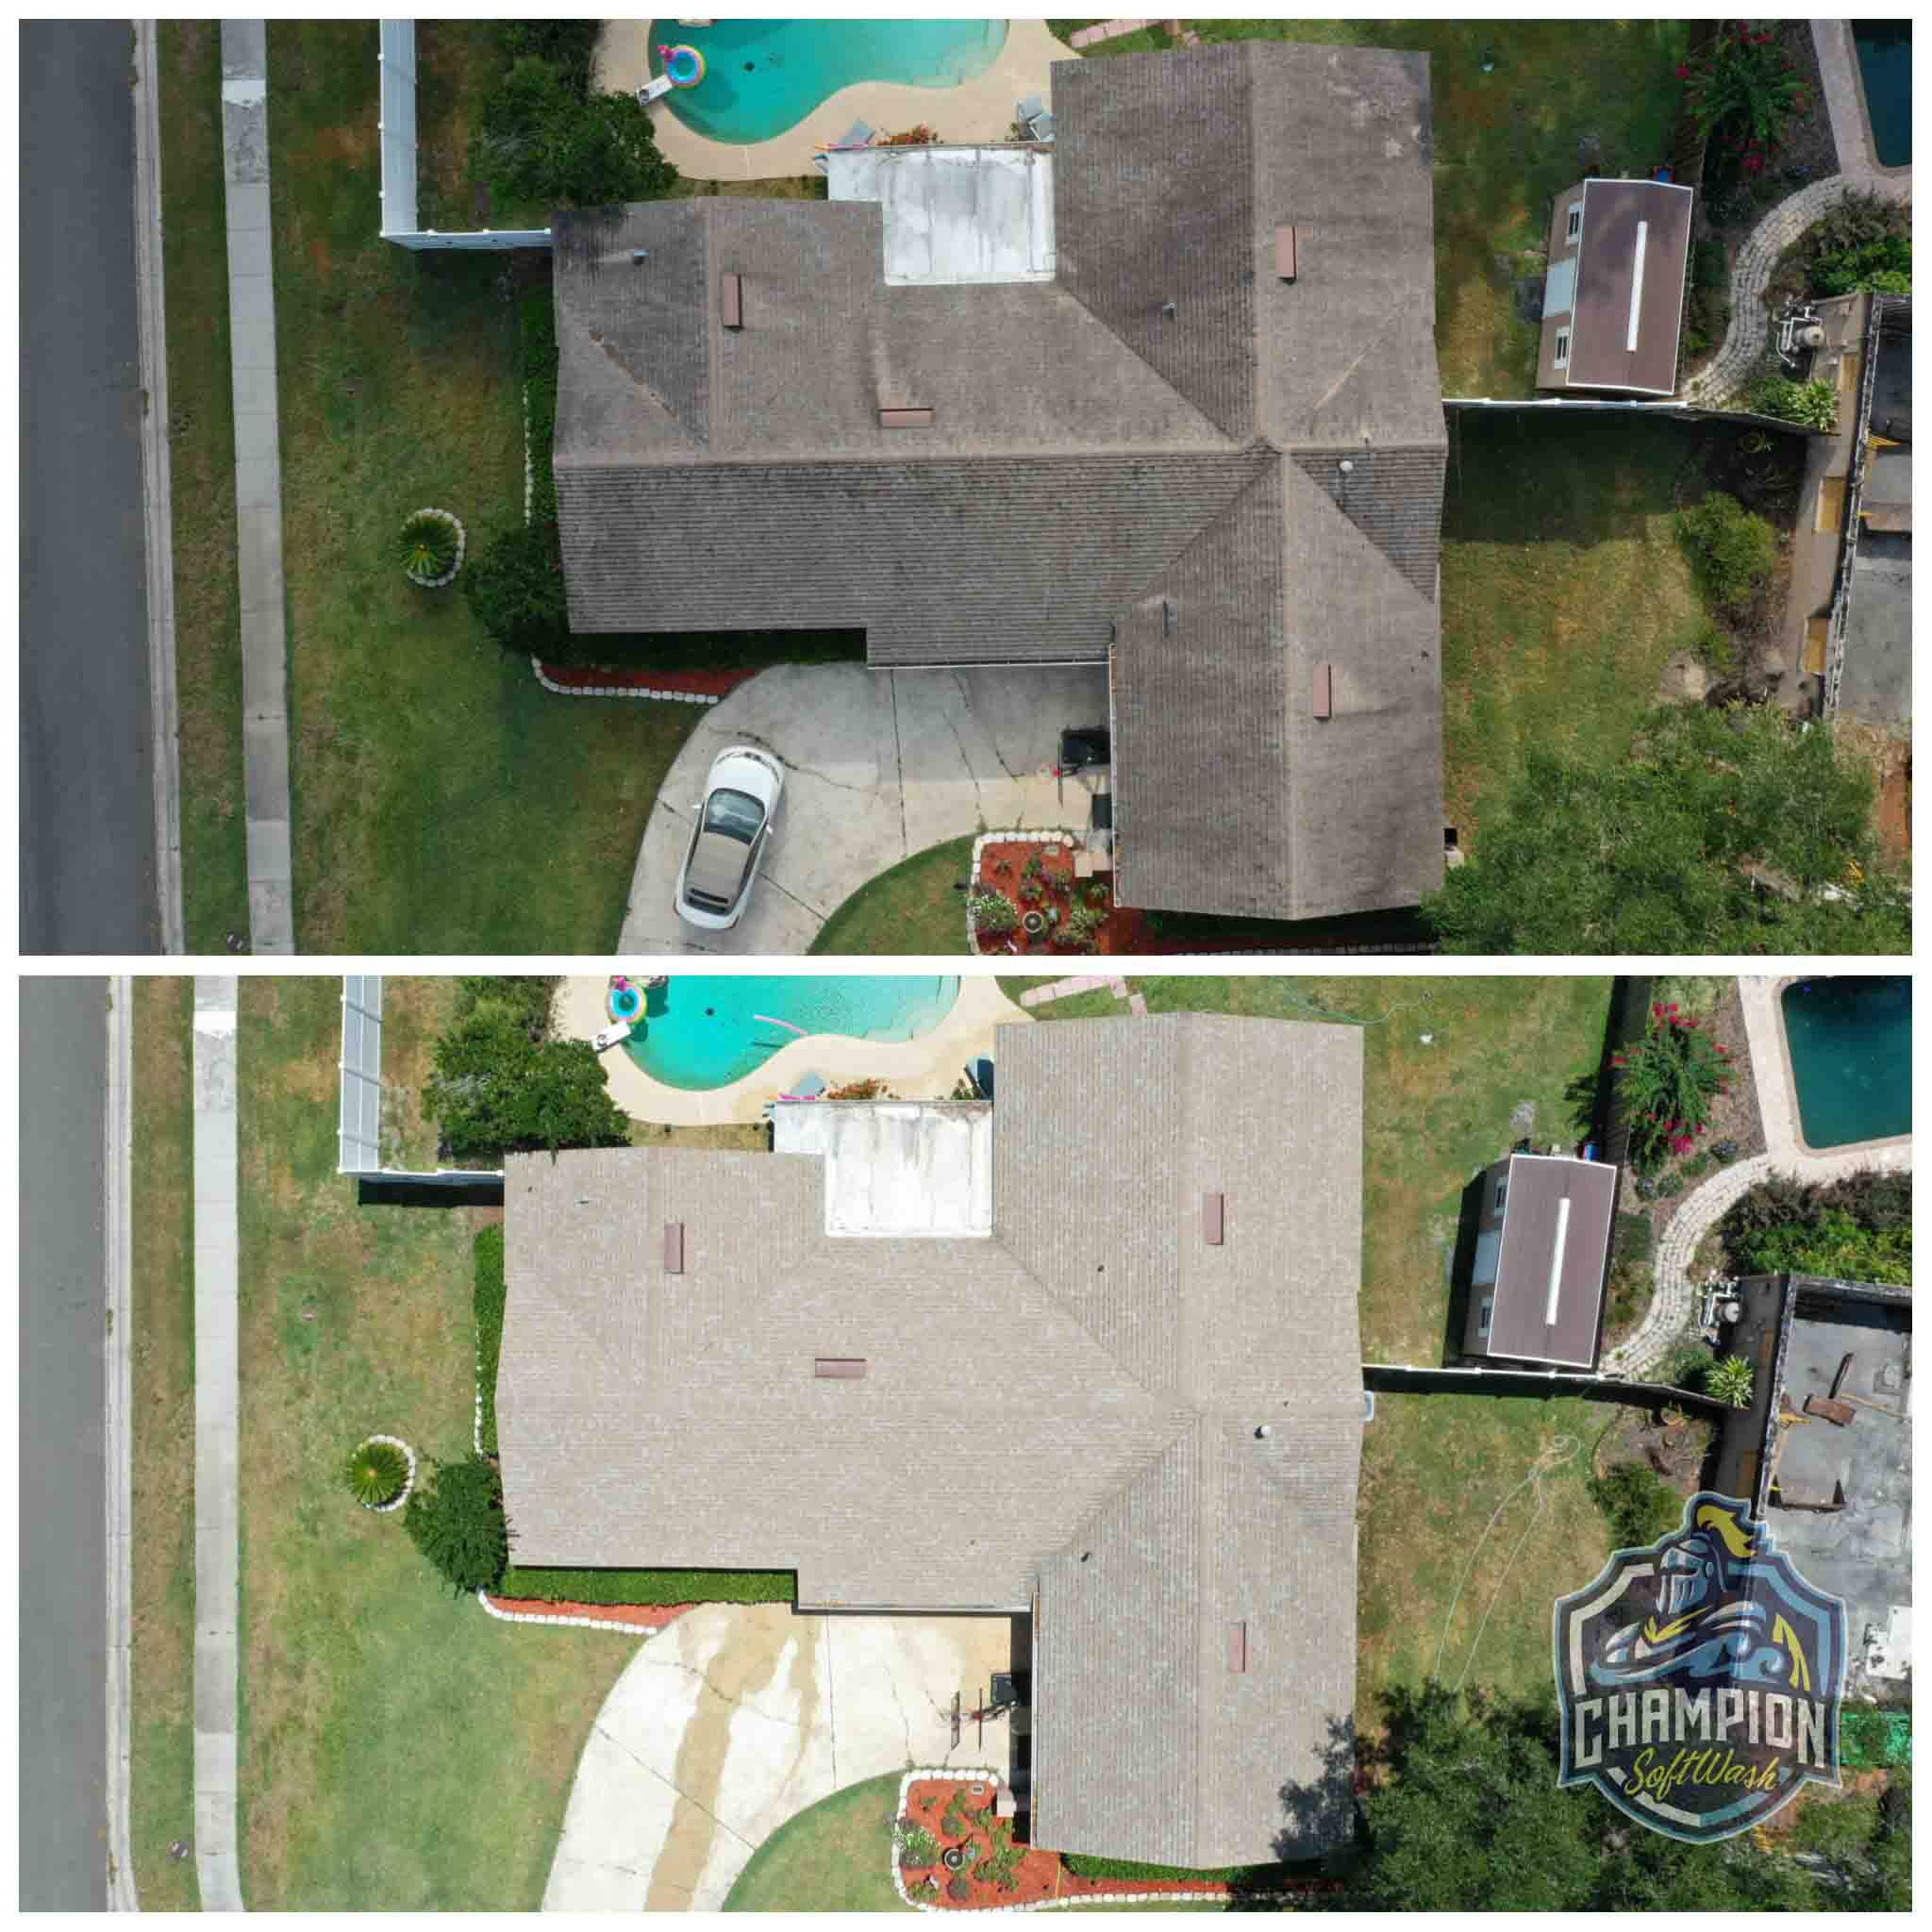 Roof Cleaning for realtor listing in Longwood FL. Shingle Roof cleaning, skylight cleaning, flat roof cleaning